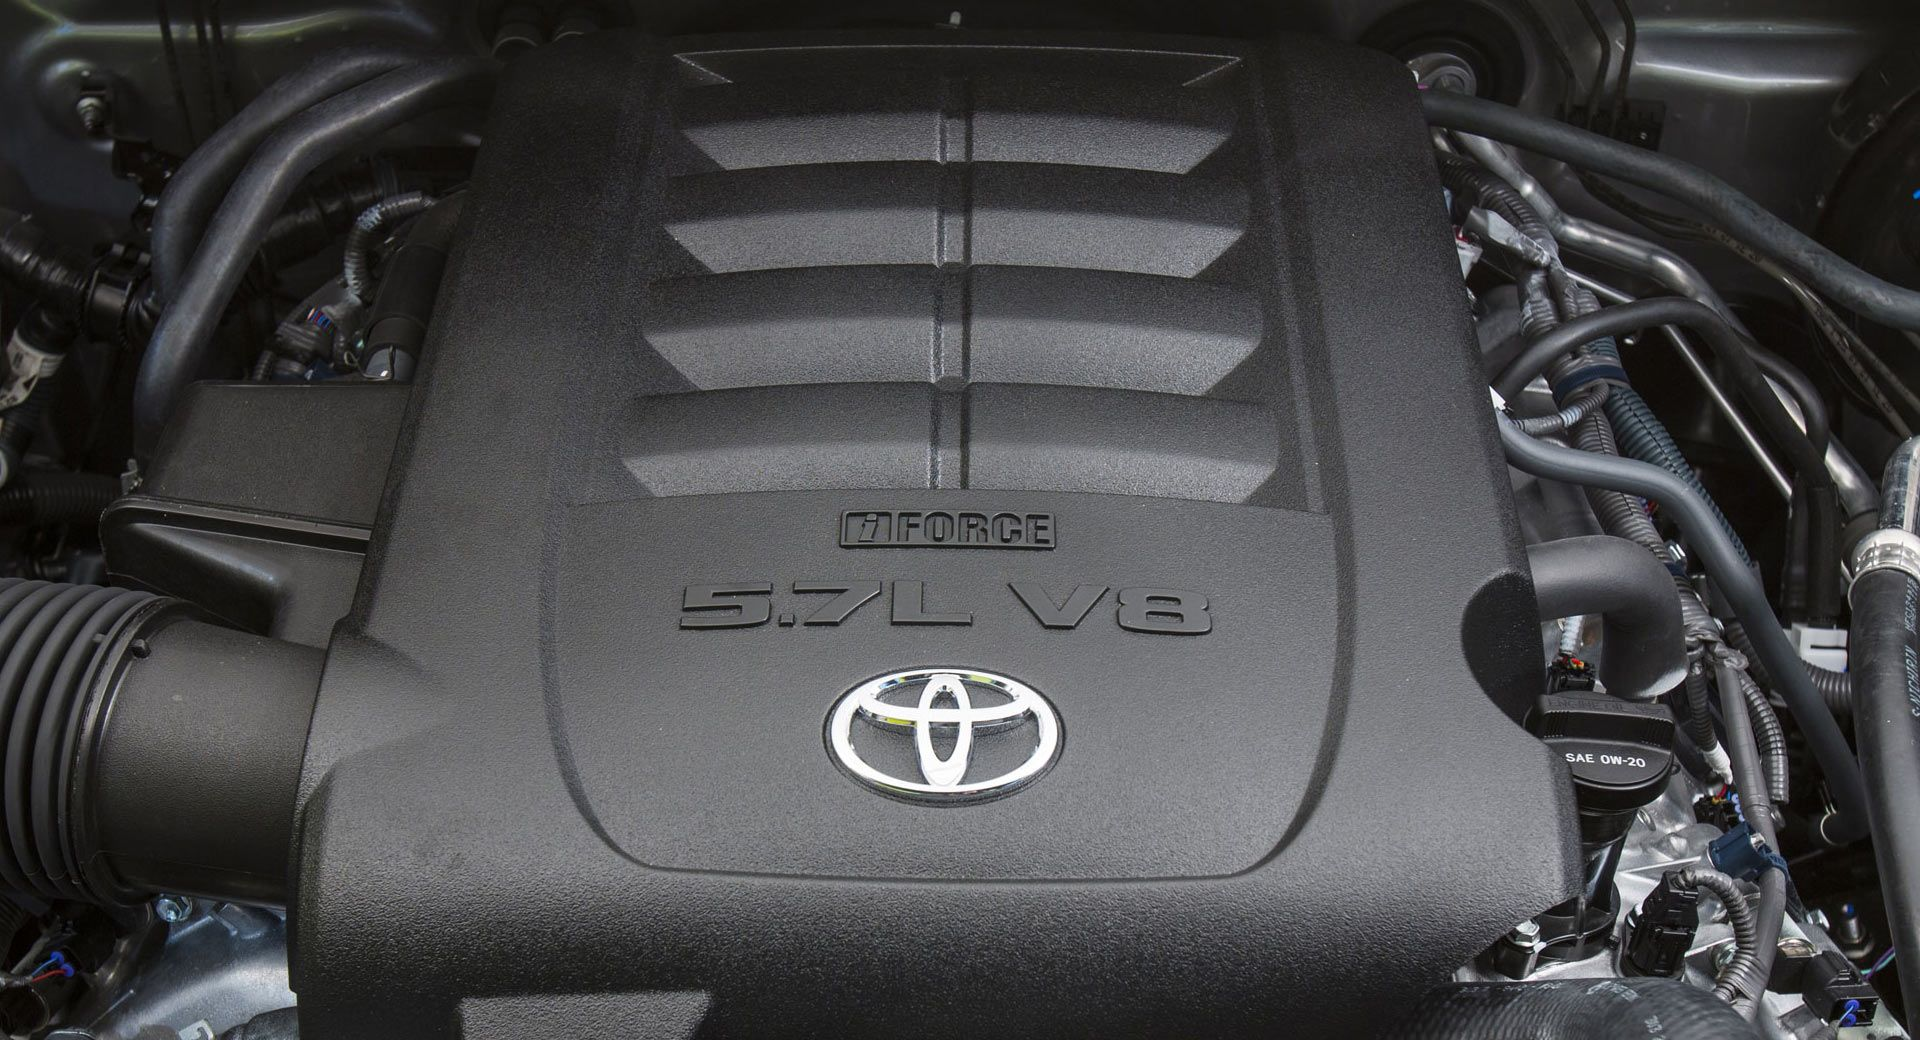 Toyota Could End Mass Production Of V8 Engines In The Next Three Years Cars Carsofinstagram Carporn Carlifesty In 2020 Cars And Coffee Cars For Sale Living In Car